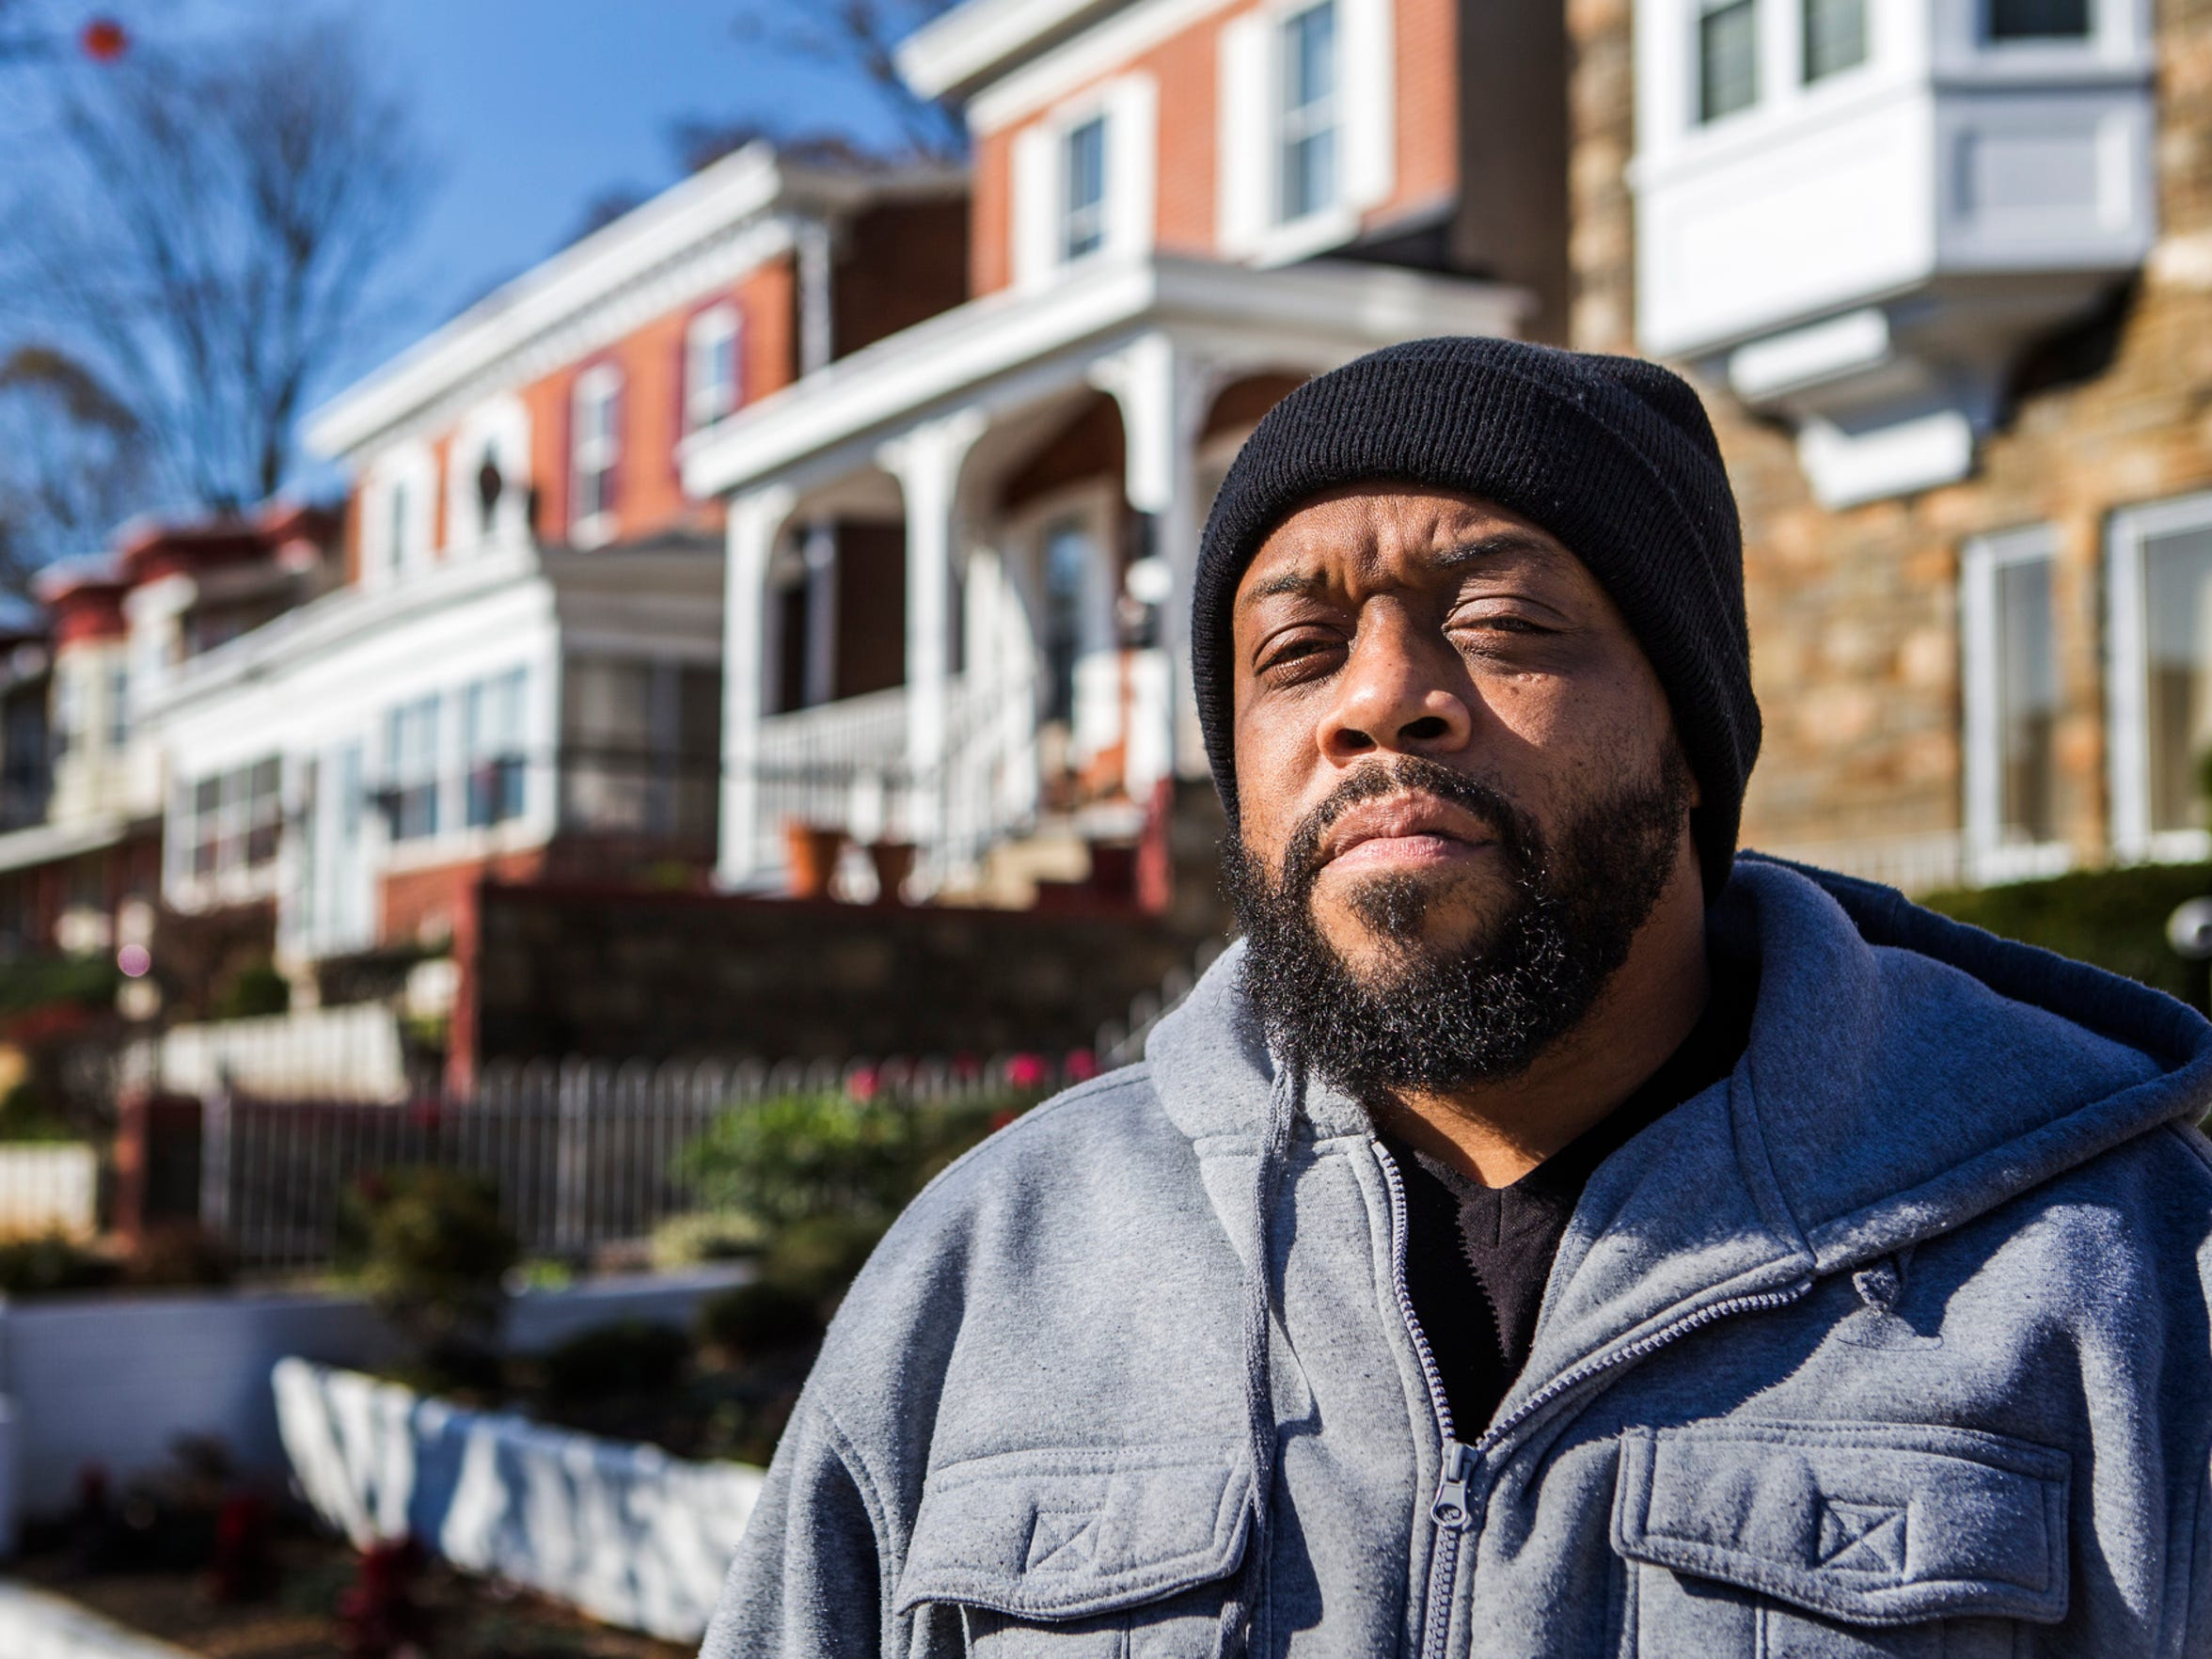 Joey Harrison, 35, lost two of his cousins to gun violence